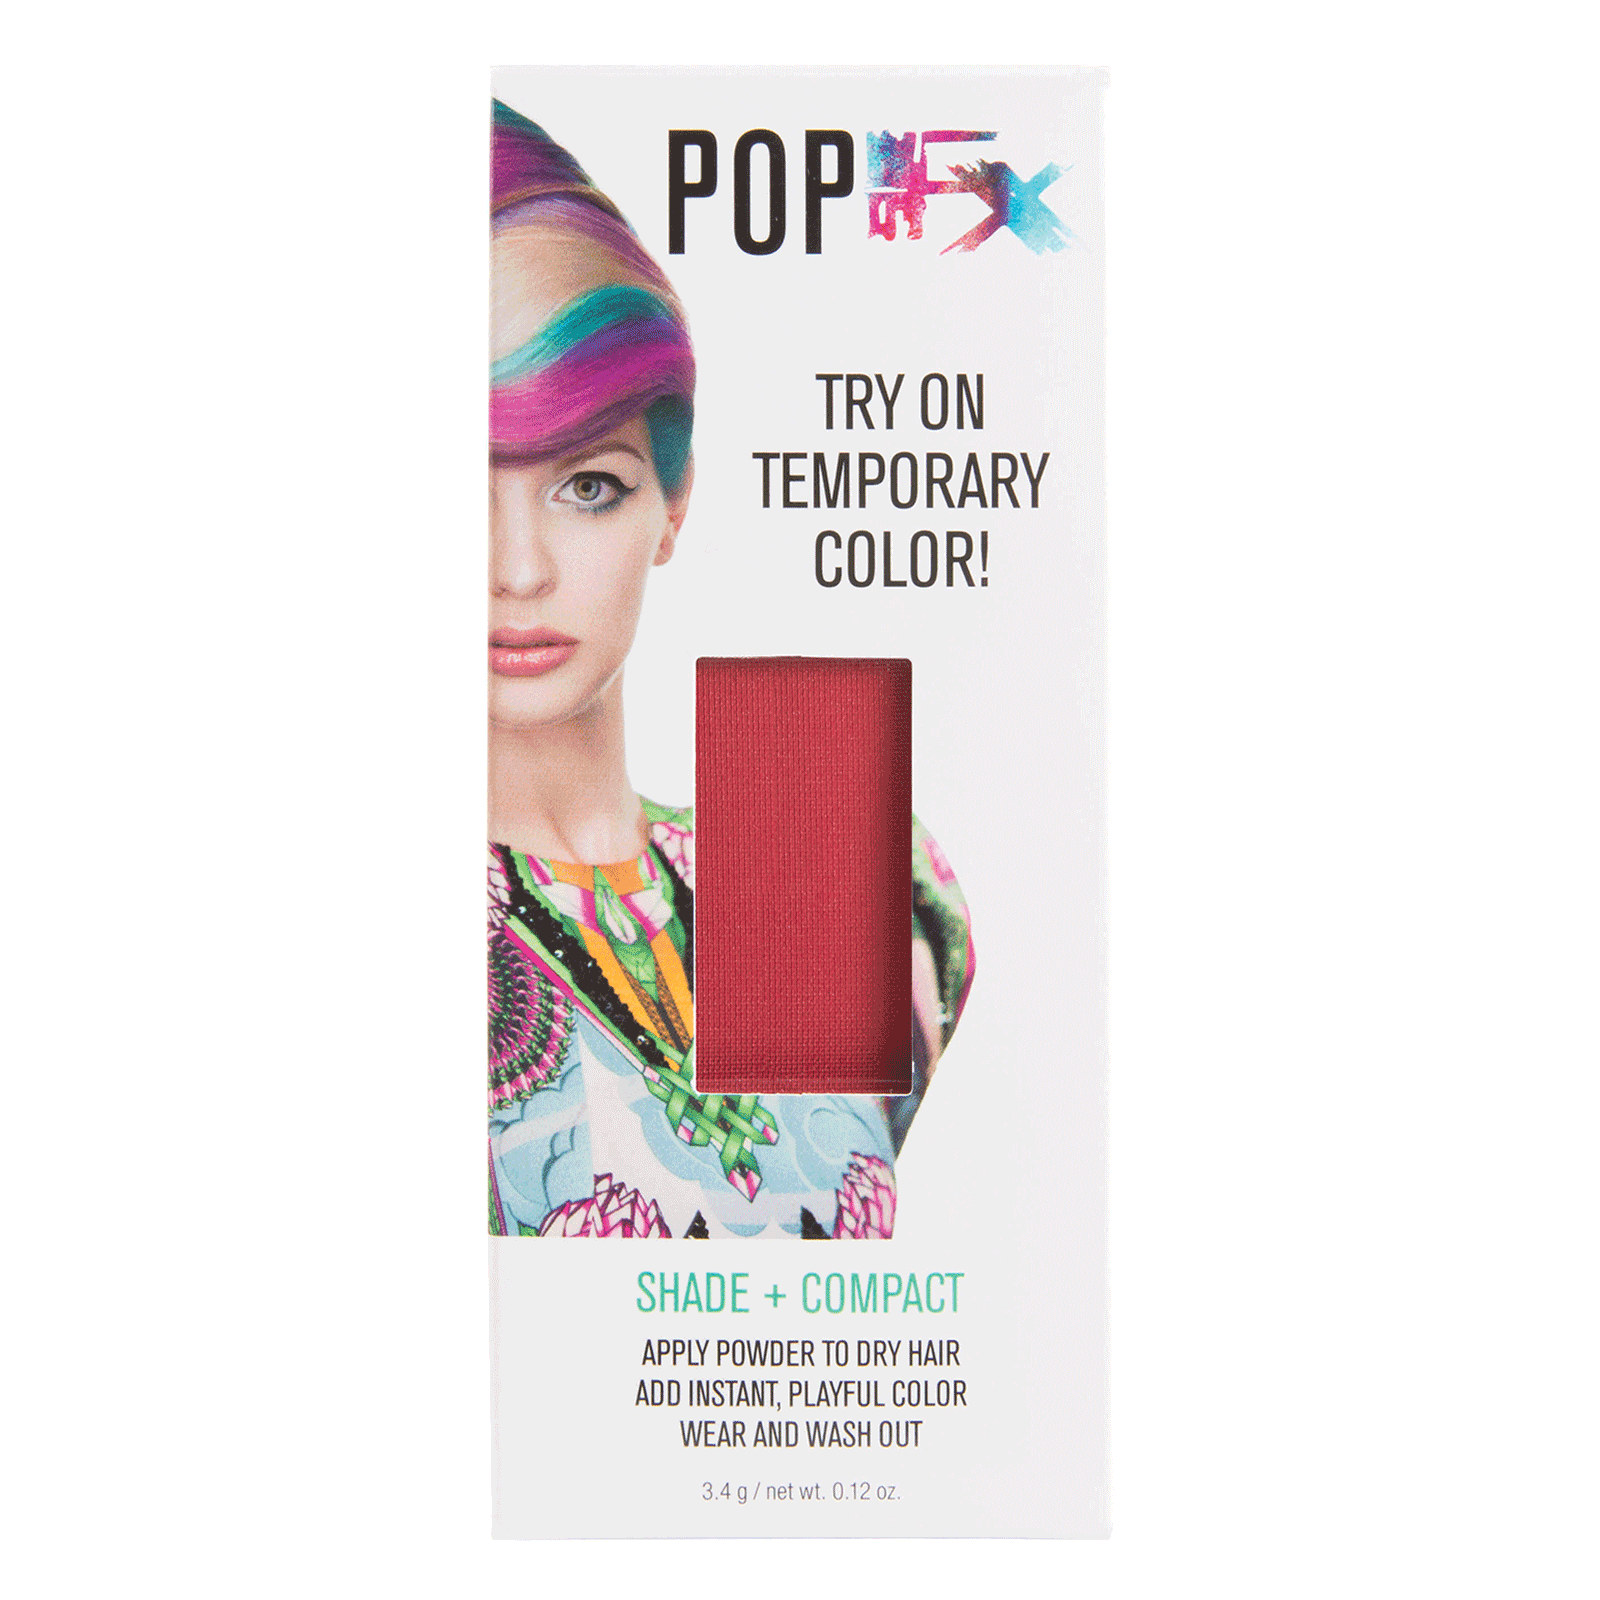 Popfx Try On Temporary Color Rusk Cosmoprof